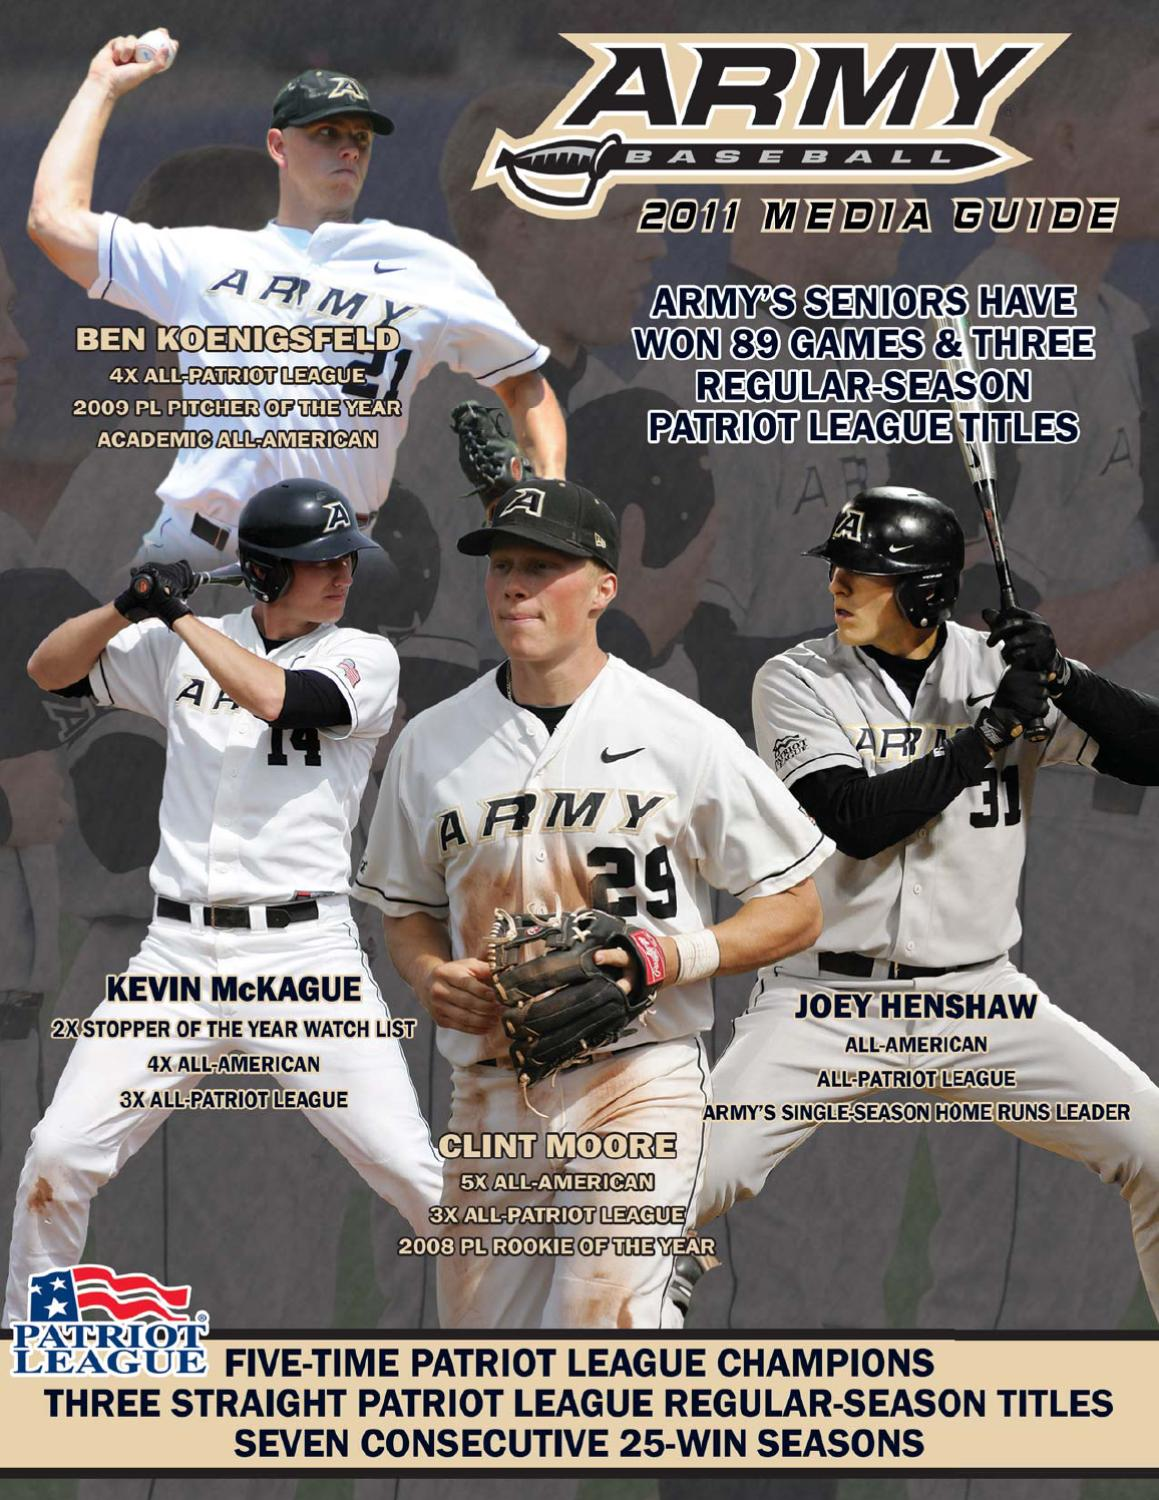 2011 Army Baseball Media Guide by Army West Point Athletics - issuu 3c5f829ca5c0